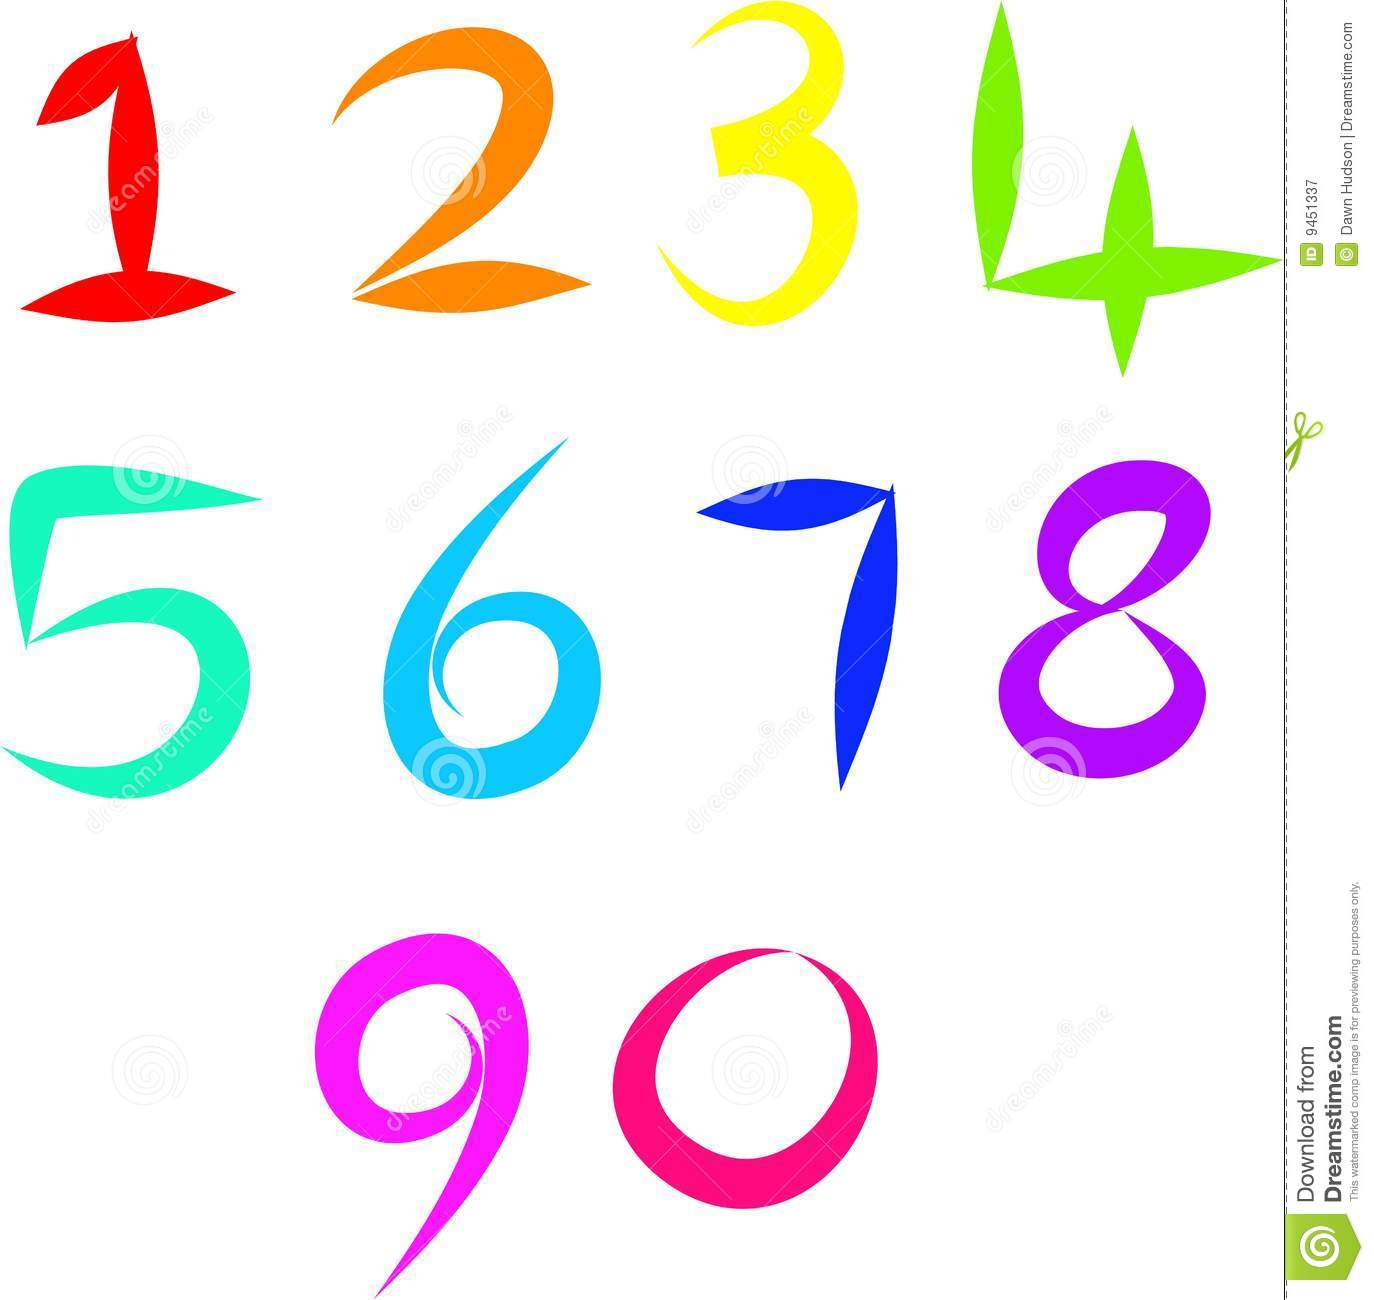 Set of colourful and simple hand drawn number icons isolated on white